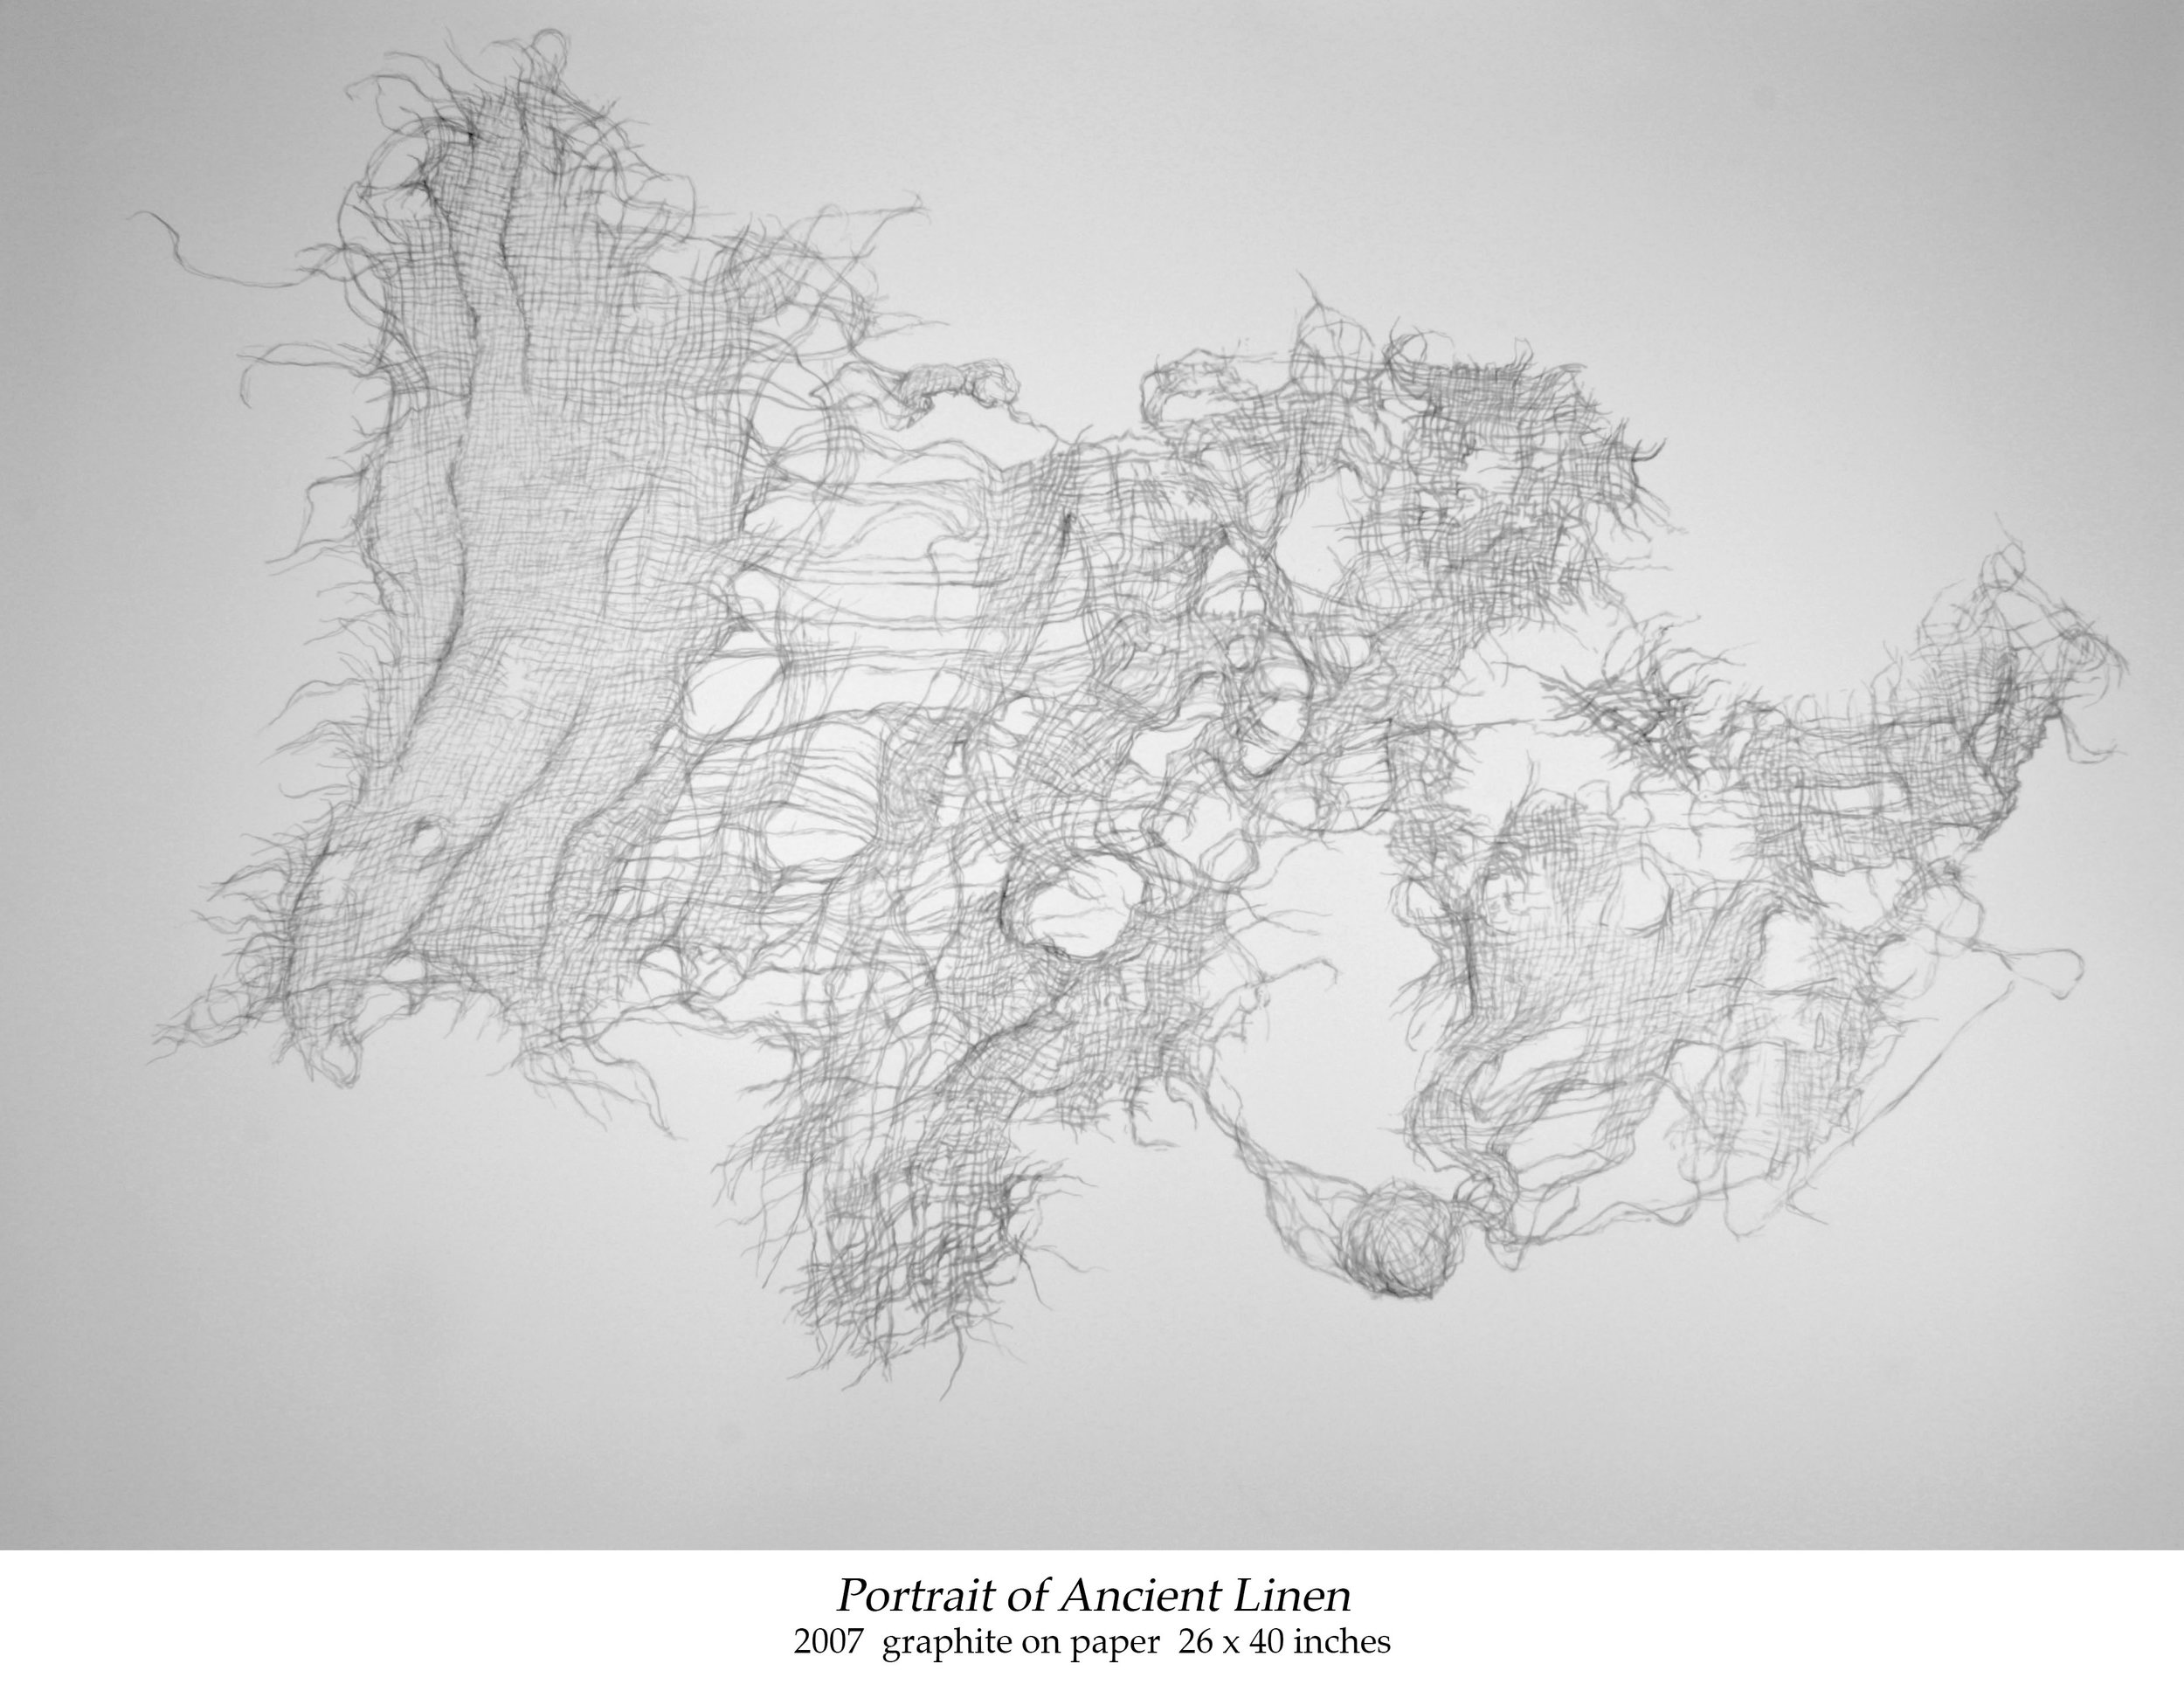 Portrait of Ancient Linen_2007_graphite on paper_26 x 40 inches_labeled.jpg